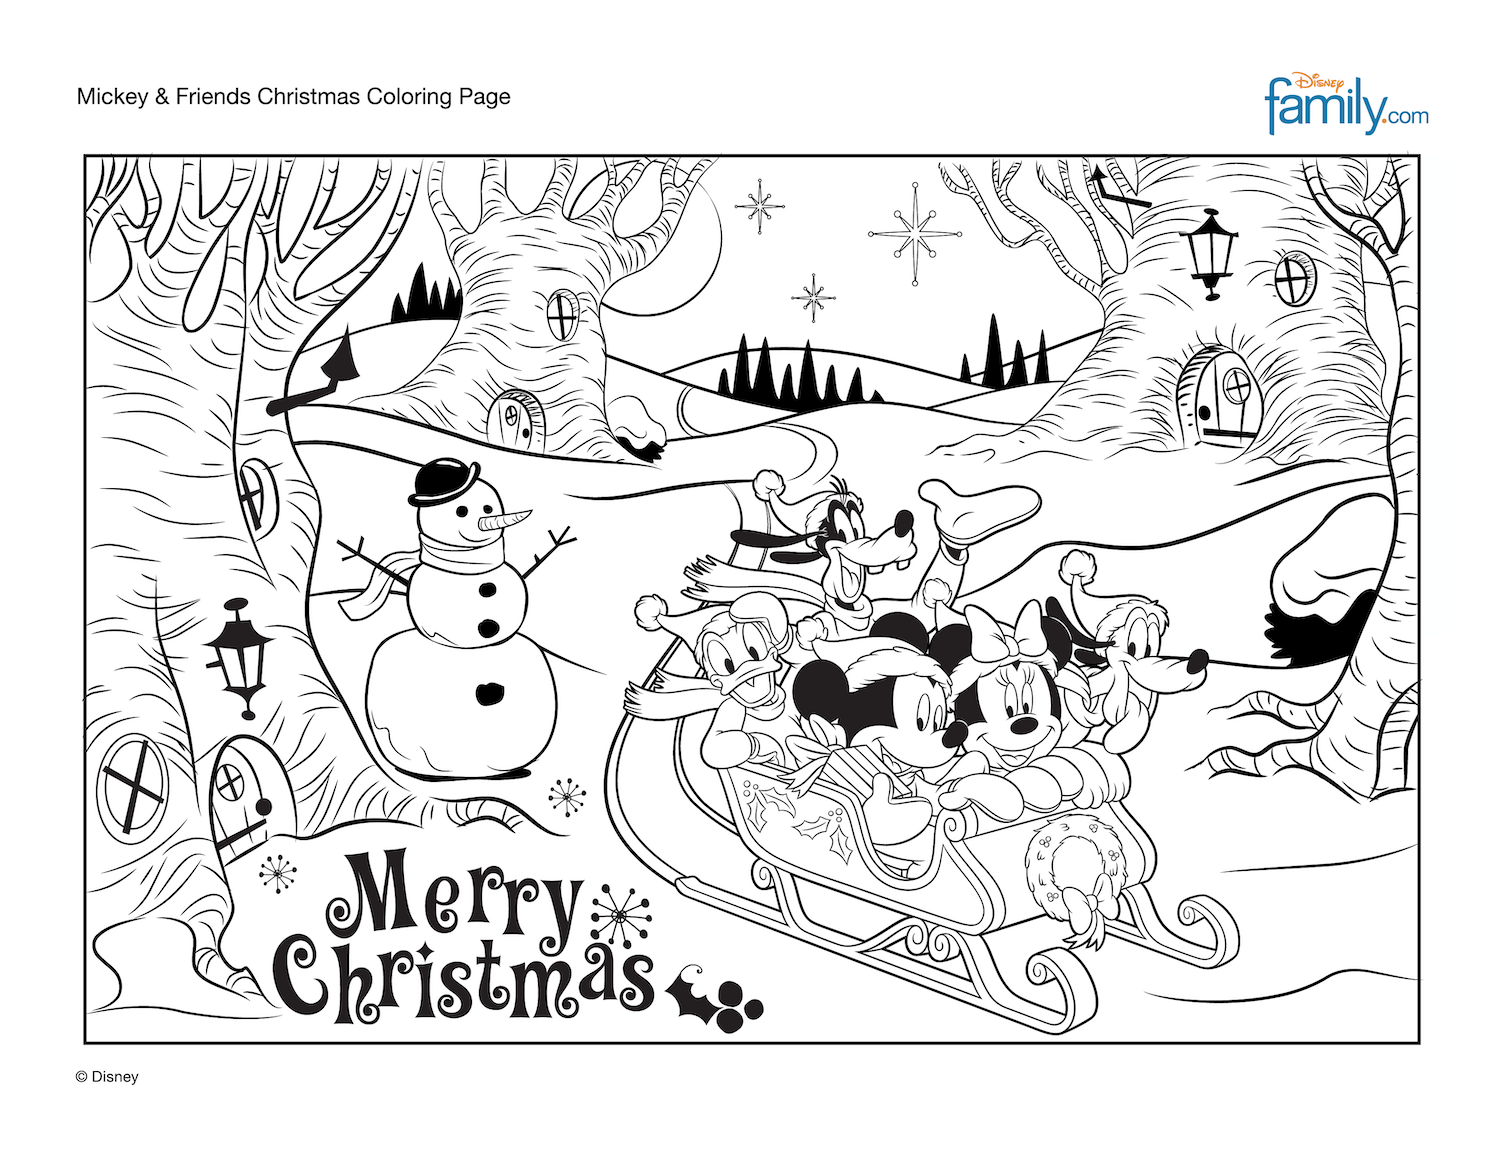 Merry Christmas Add Some Disney Magic To The Holidays With This Mickey Friends Chris Christmas Coloring Pages Christmas Colors Kids Christmas Coloring Pages